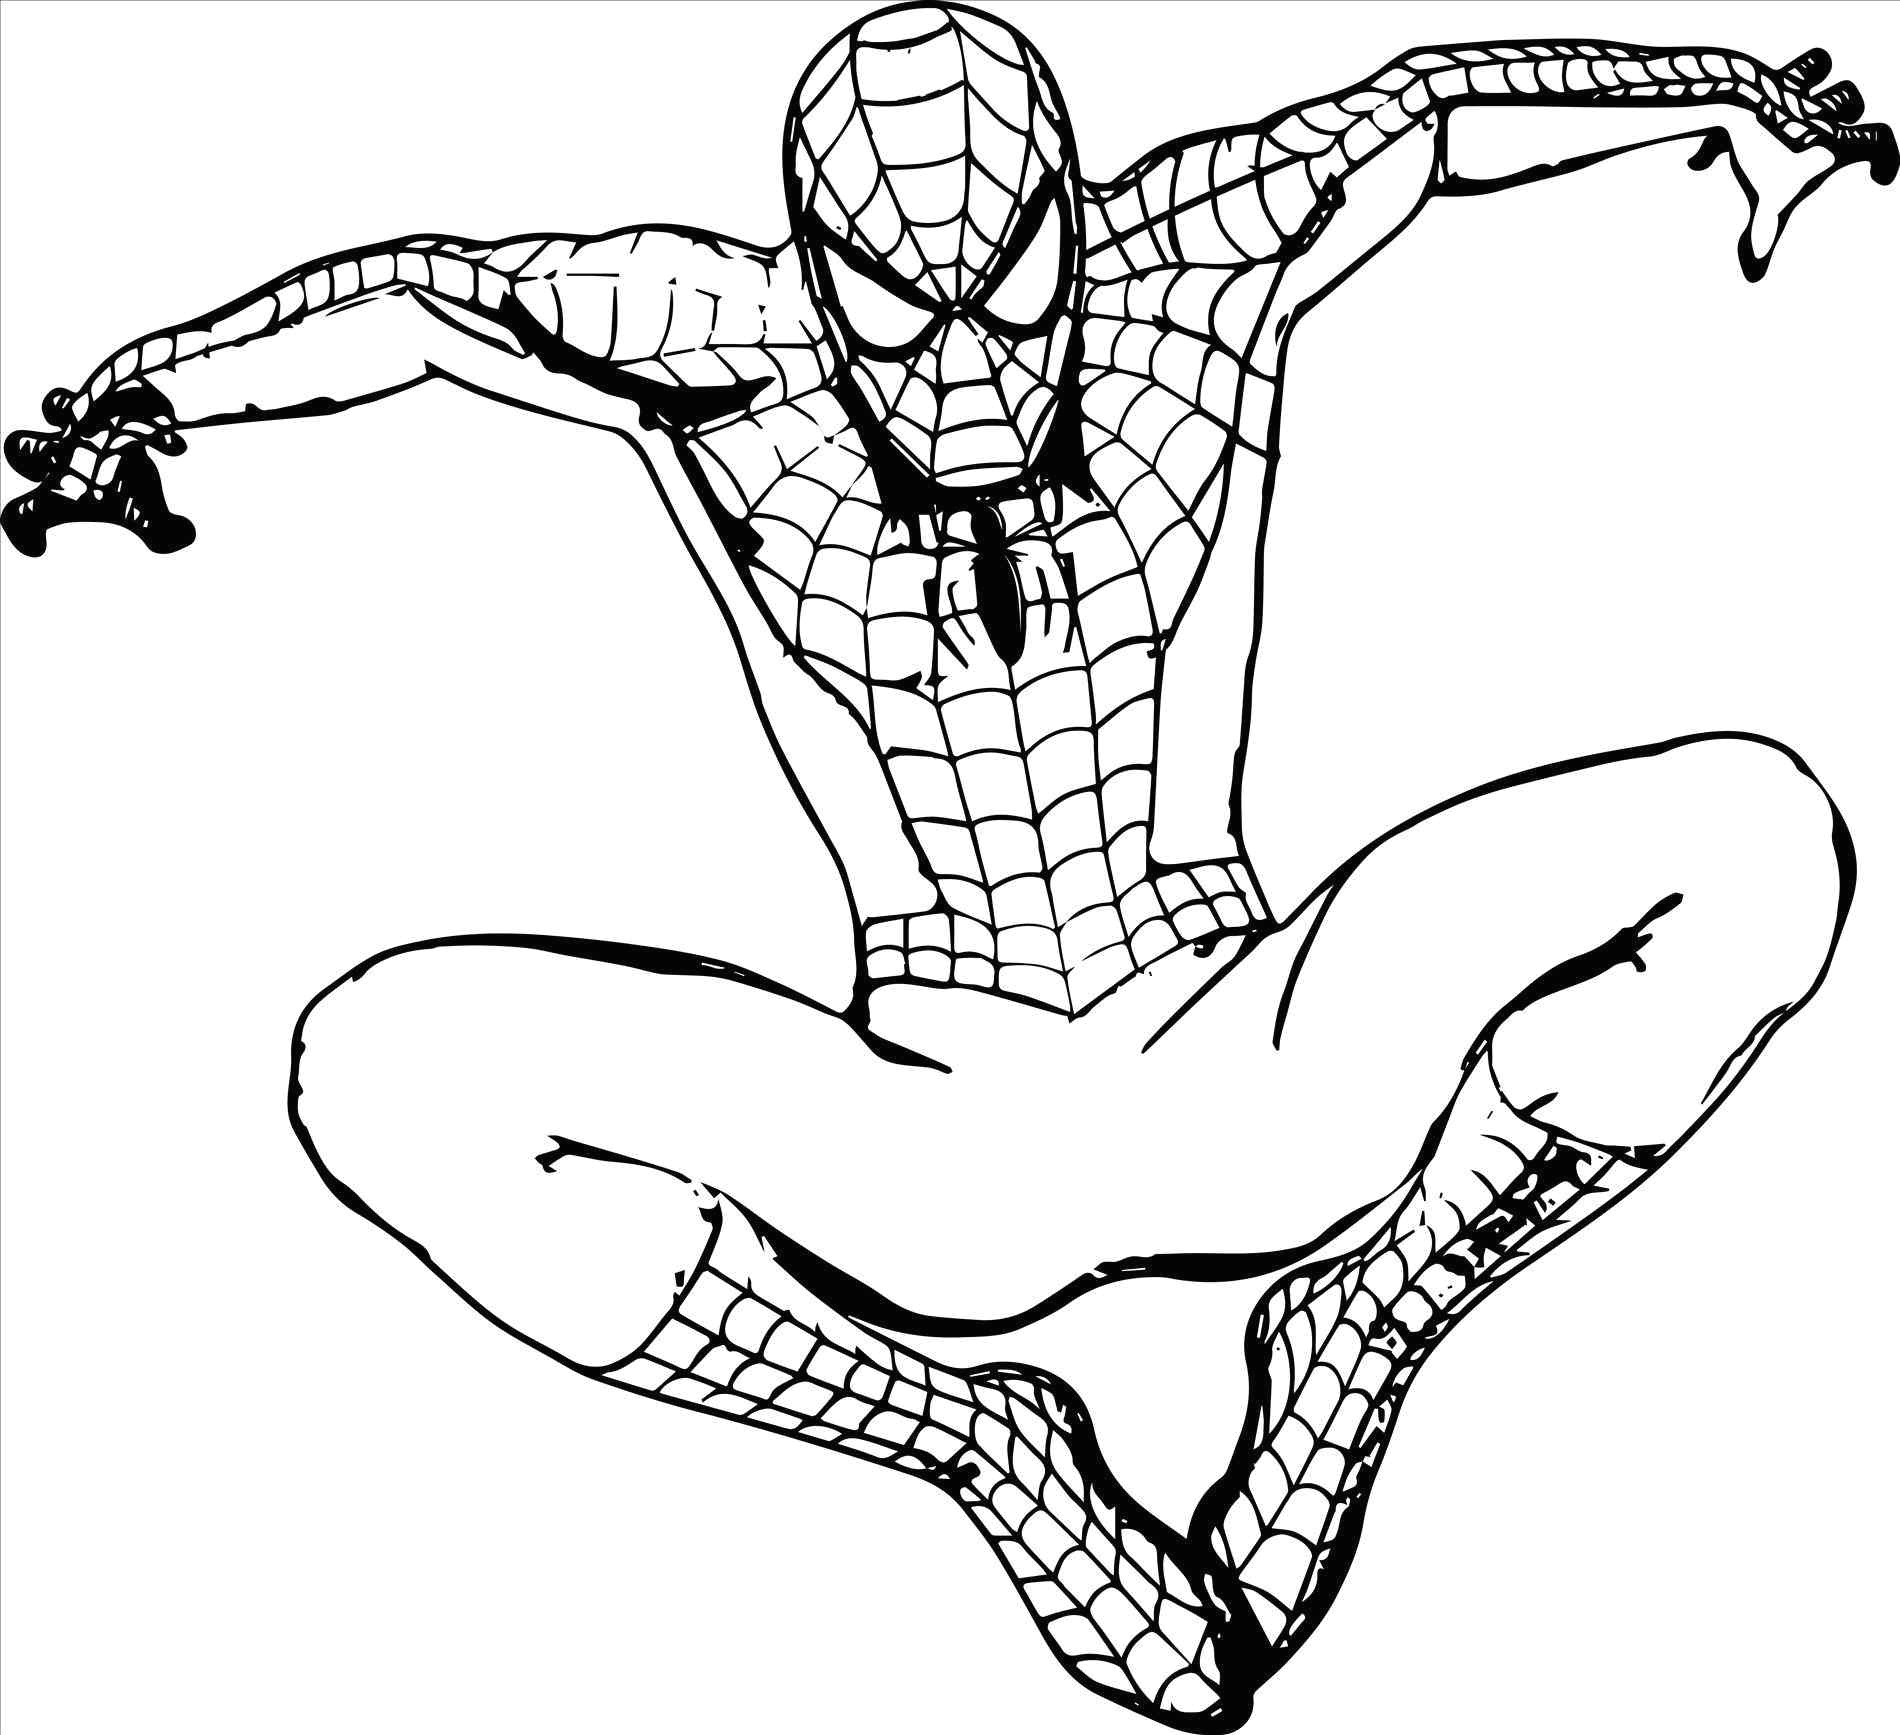 spiderman coloring pages to print luxury superheroes easy to draw spiderman coloring pages luxury 0 0d